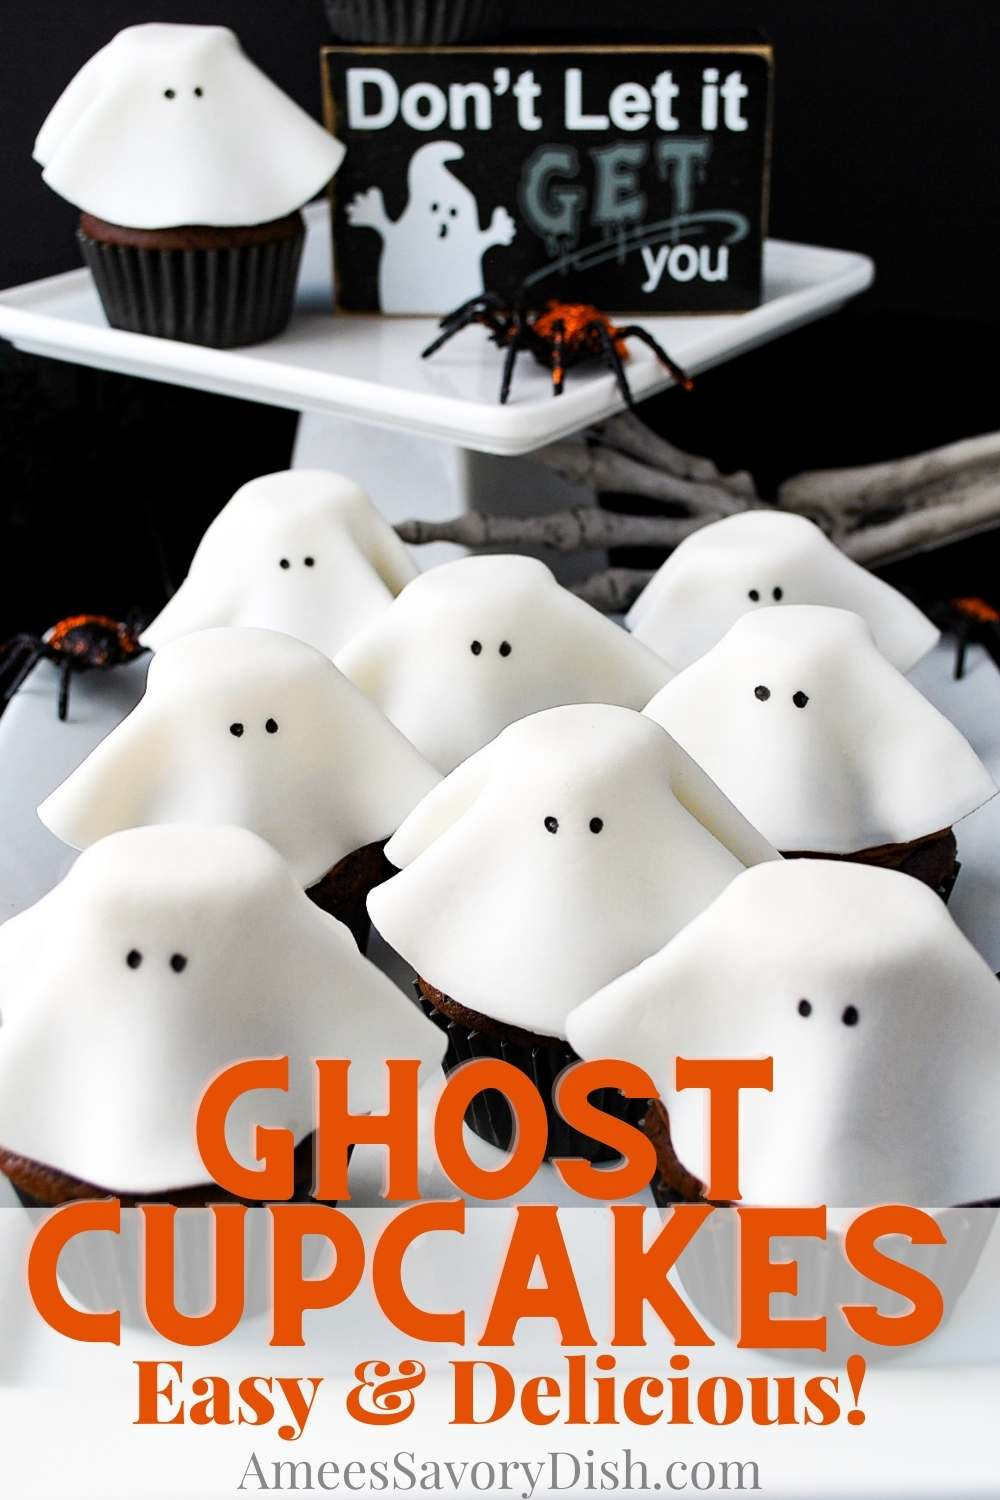 These festive ghost cupcakes will be the hit of your Halloween bash. These adorable fondant ghosts are easy to make using premade fondant, marshmallows, and melted chocolate chips. via @Ameessavorydish